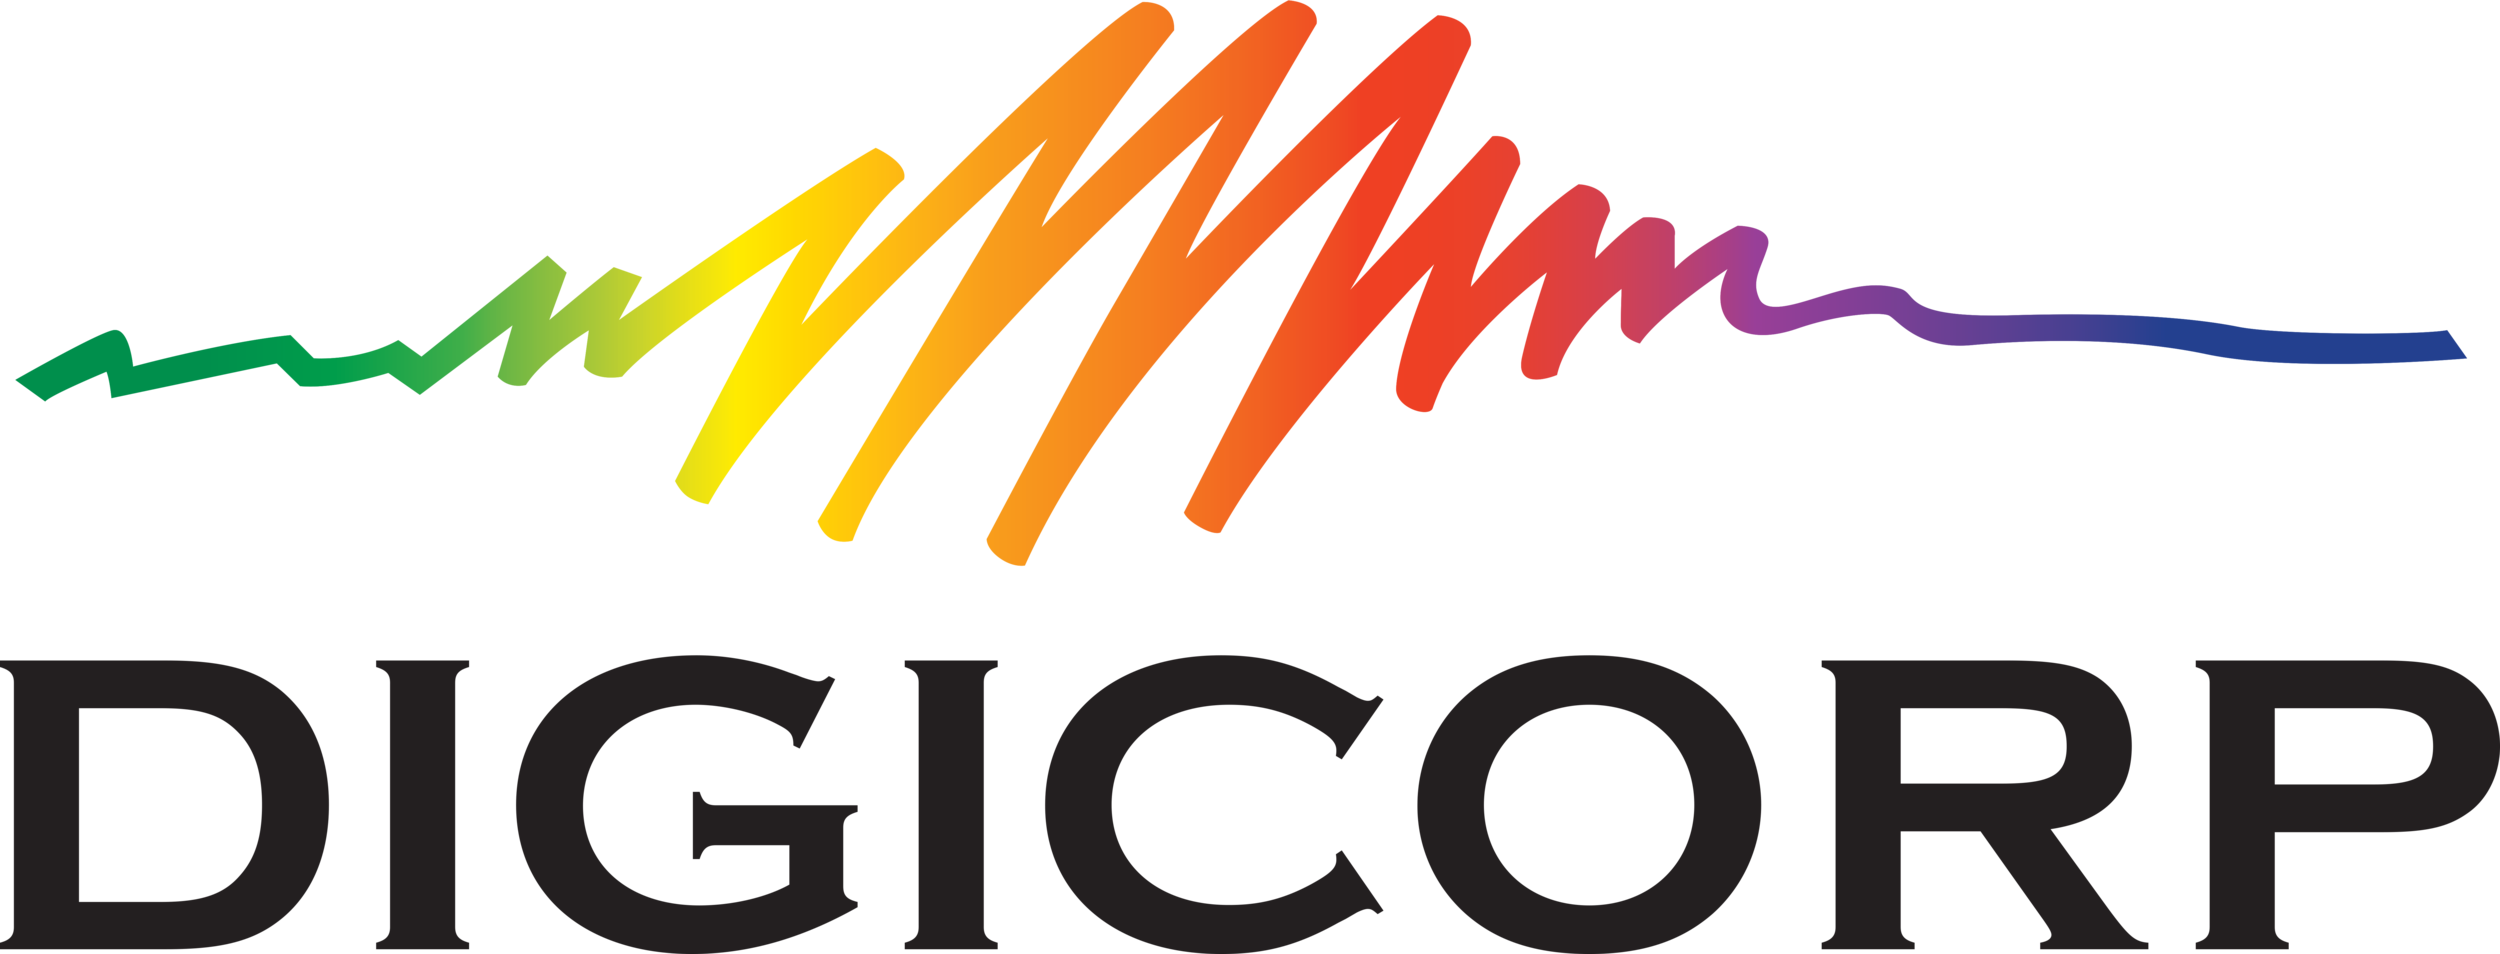 digicorp logo_High Res.png